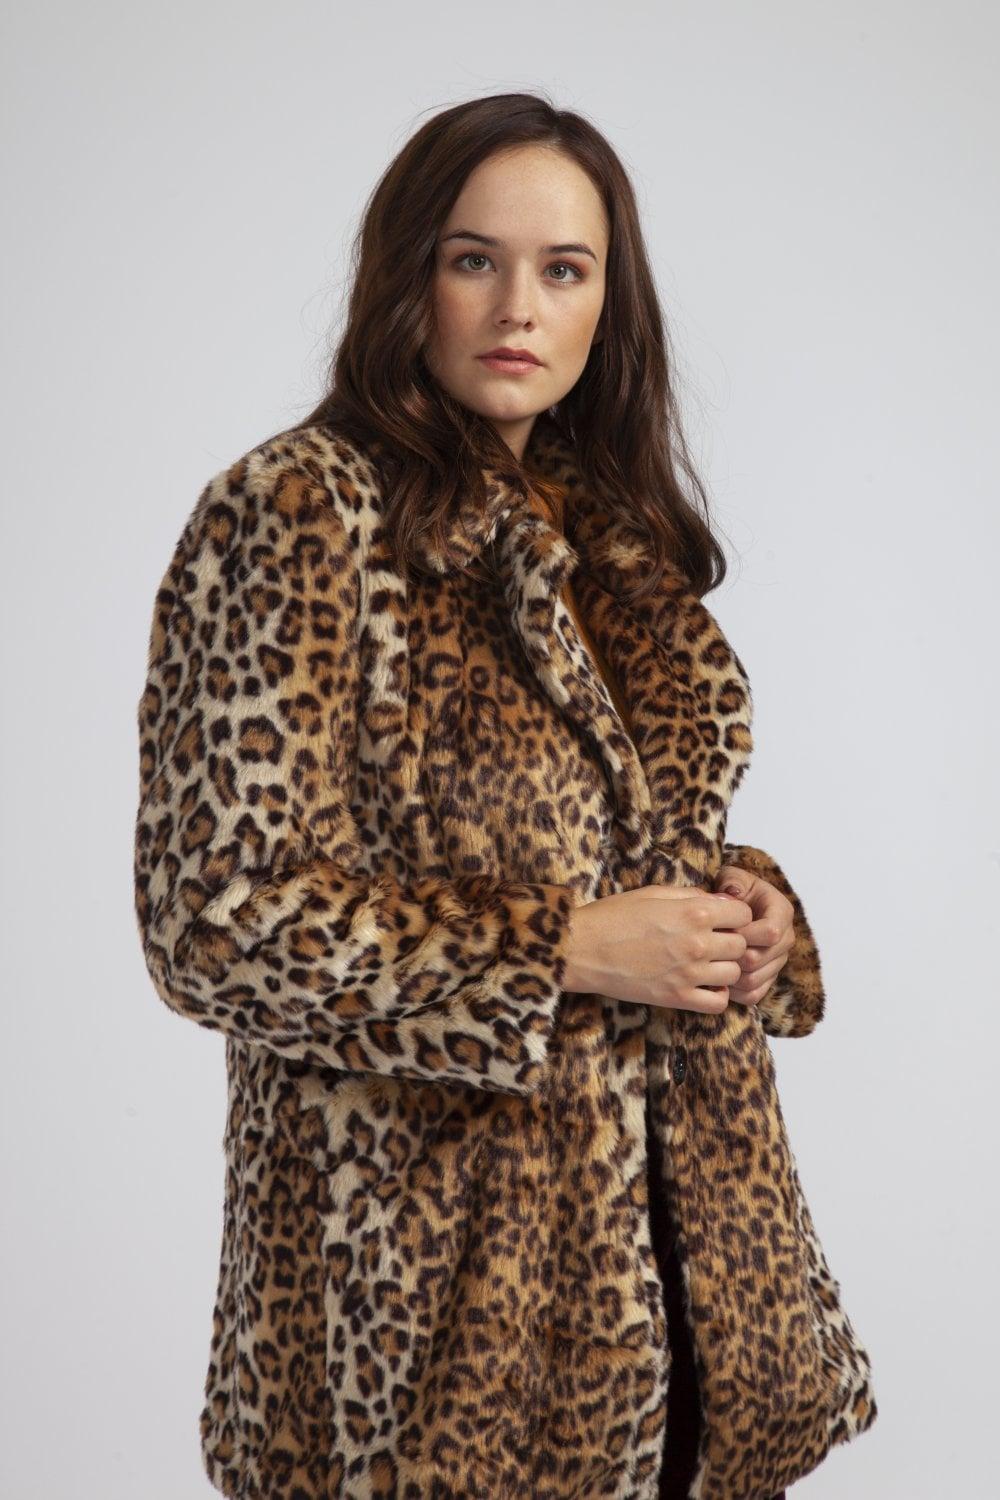 JAYLEY Leopard Print Faux Fur Coat - Womenswear from JAYLEY UK c374d20fd